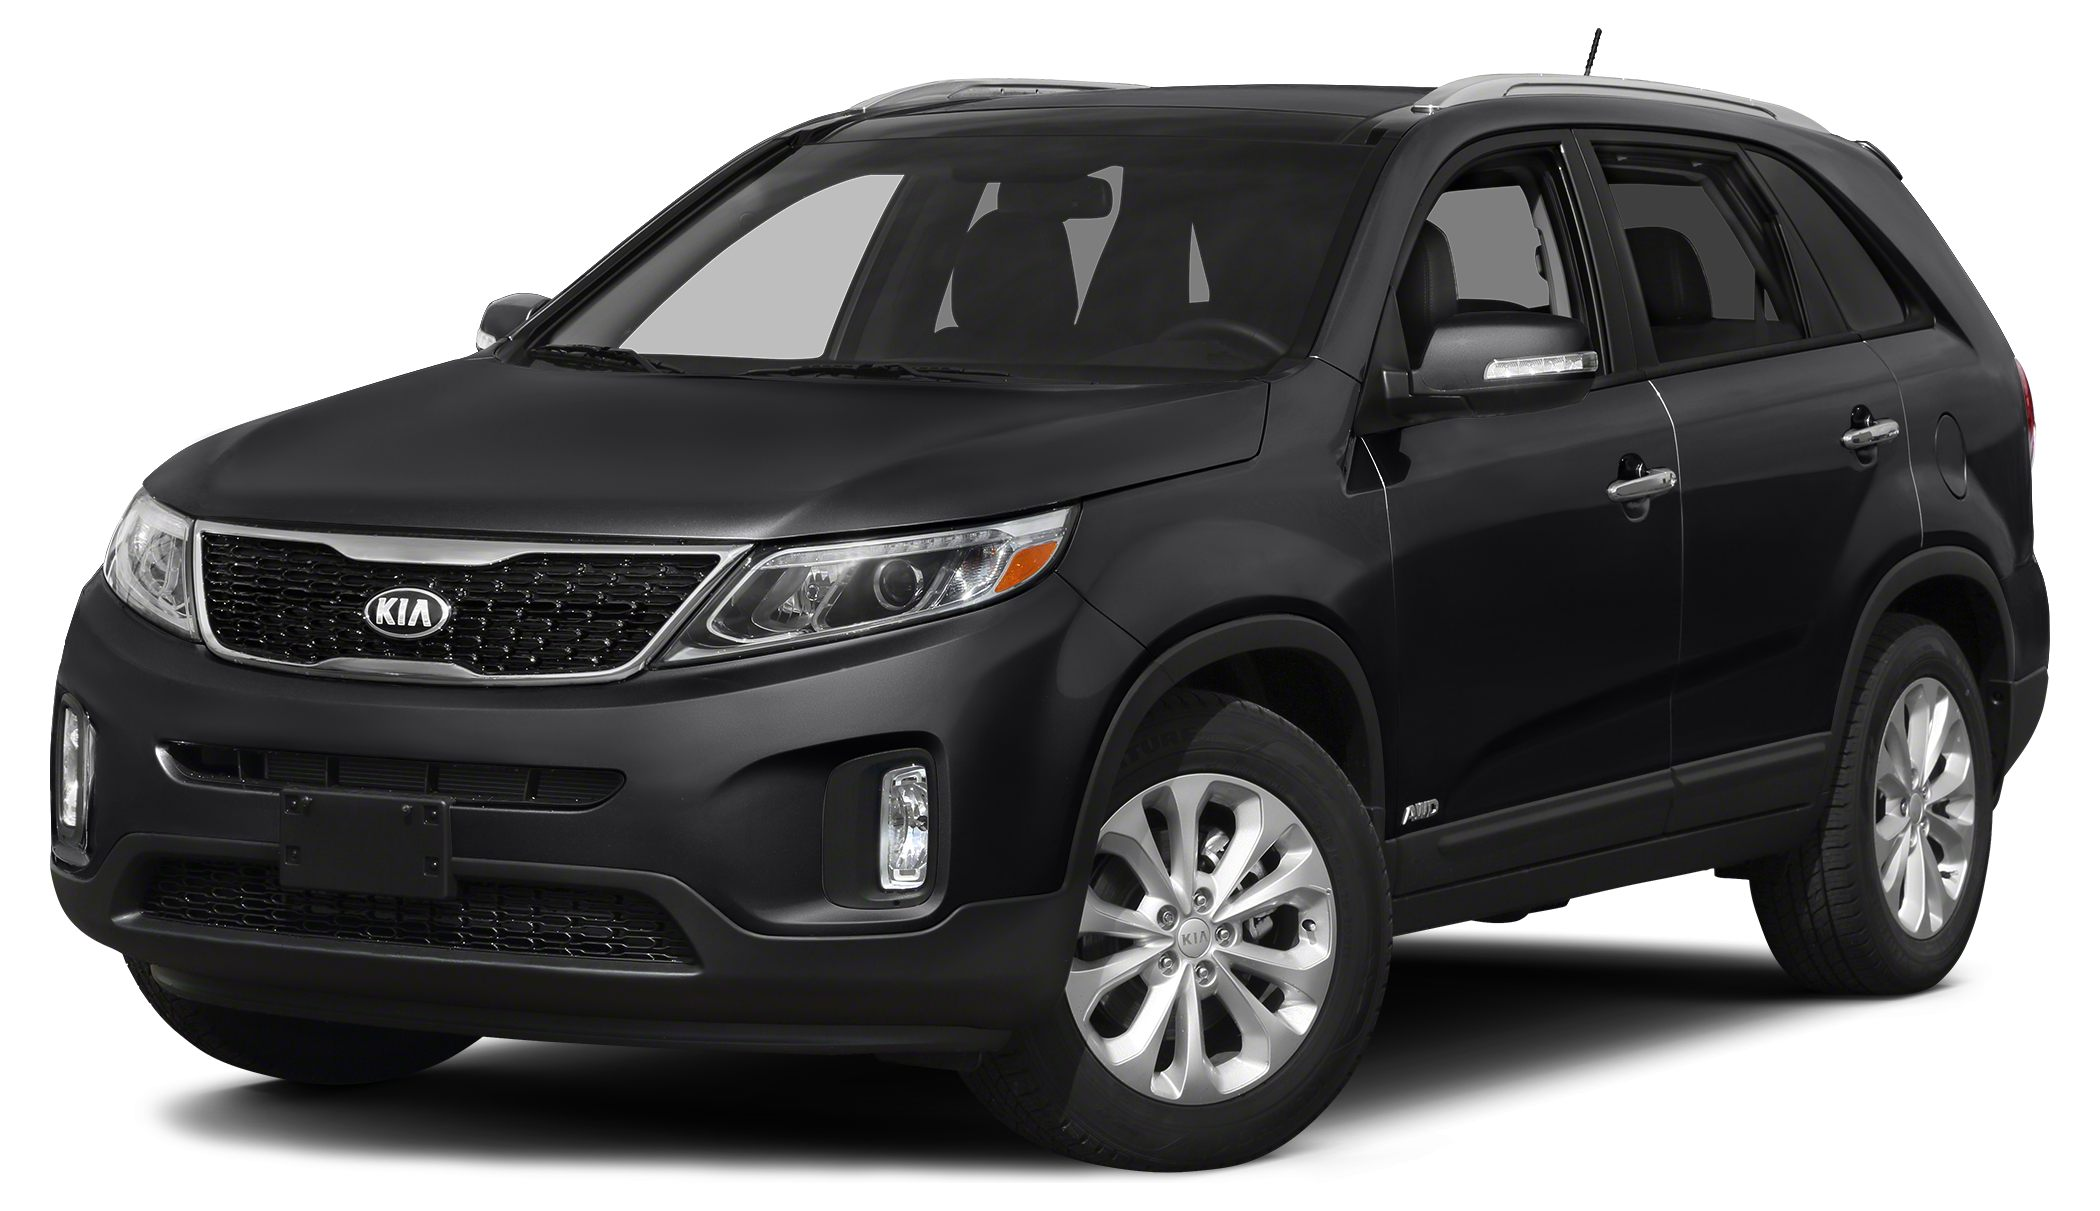 2015 Kia Sorento LX Miles 12754Color Black Cherry Stock P1181 VIN 5XYKTCA62FG561498